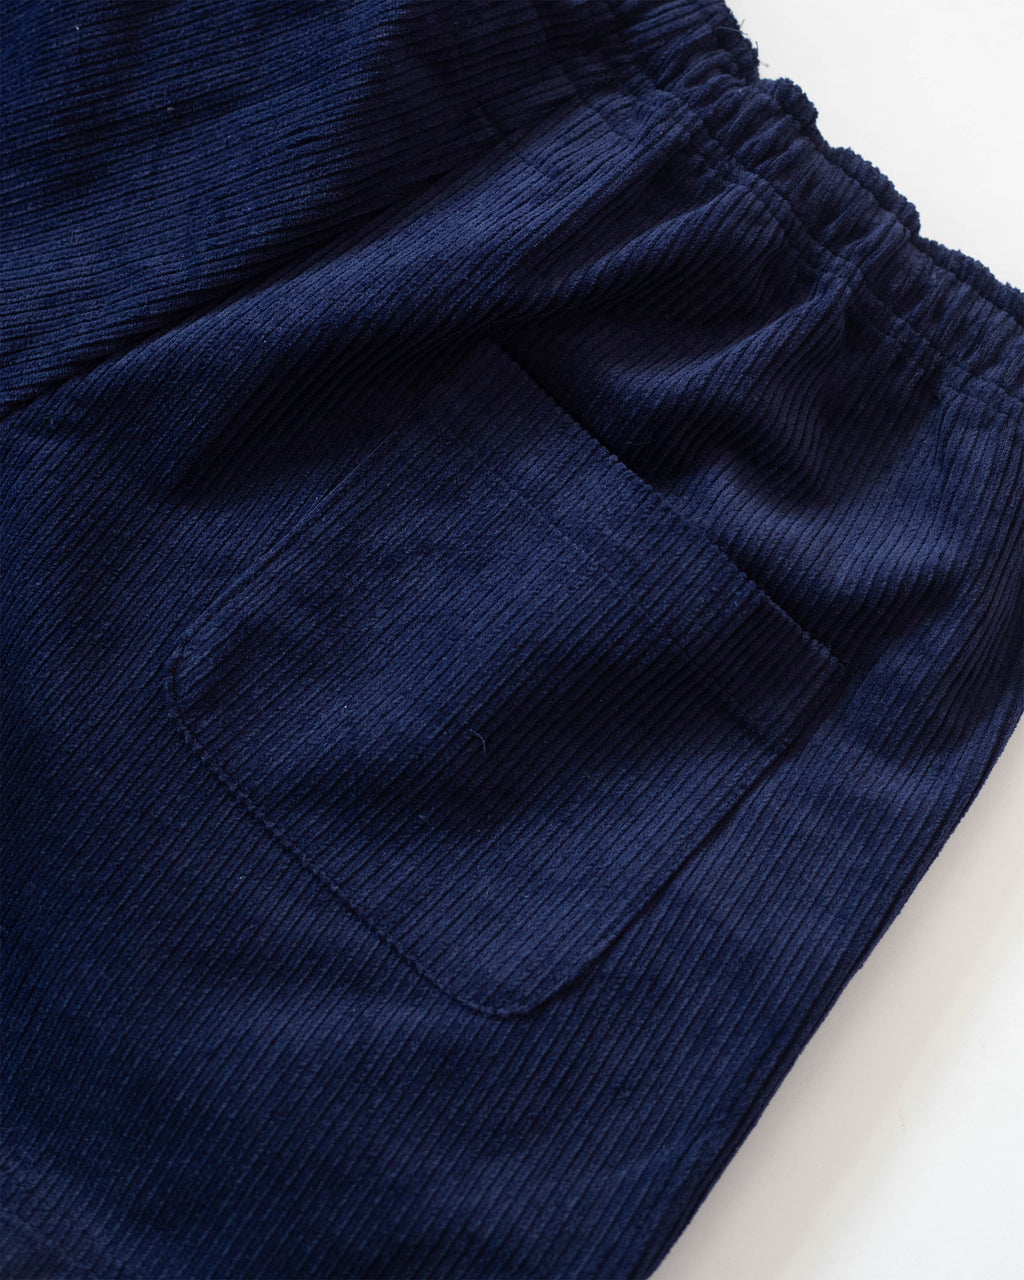 Corduroy Rugby Shorts Navy | CHECKS DOWNTOWN